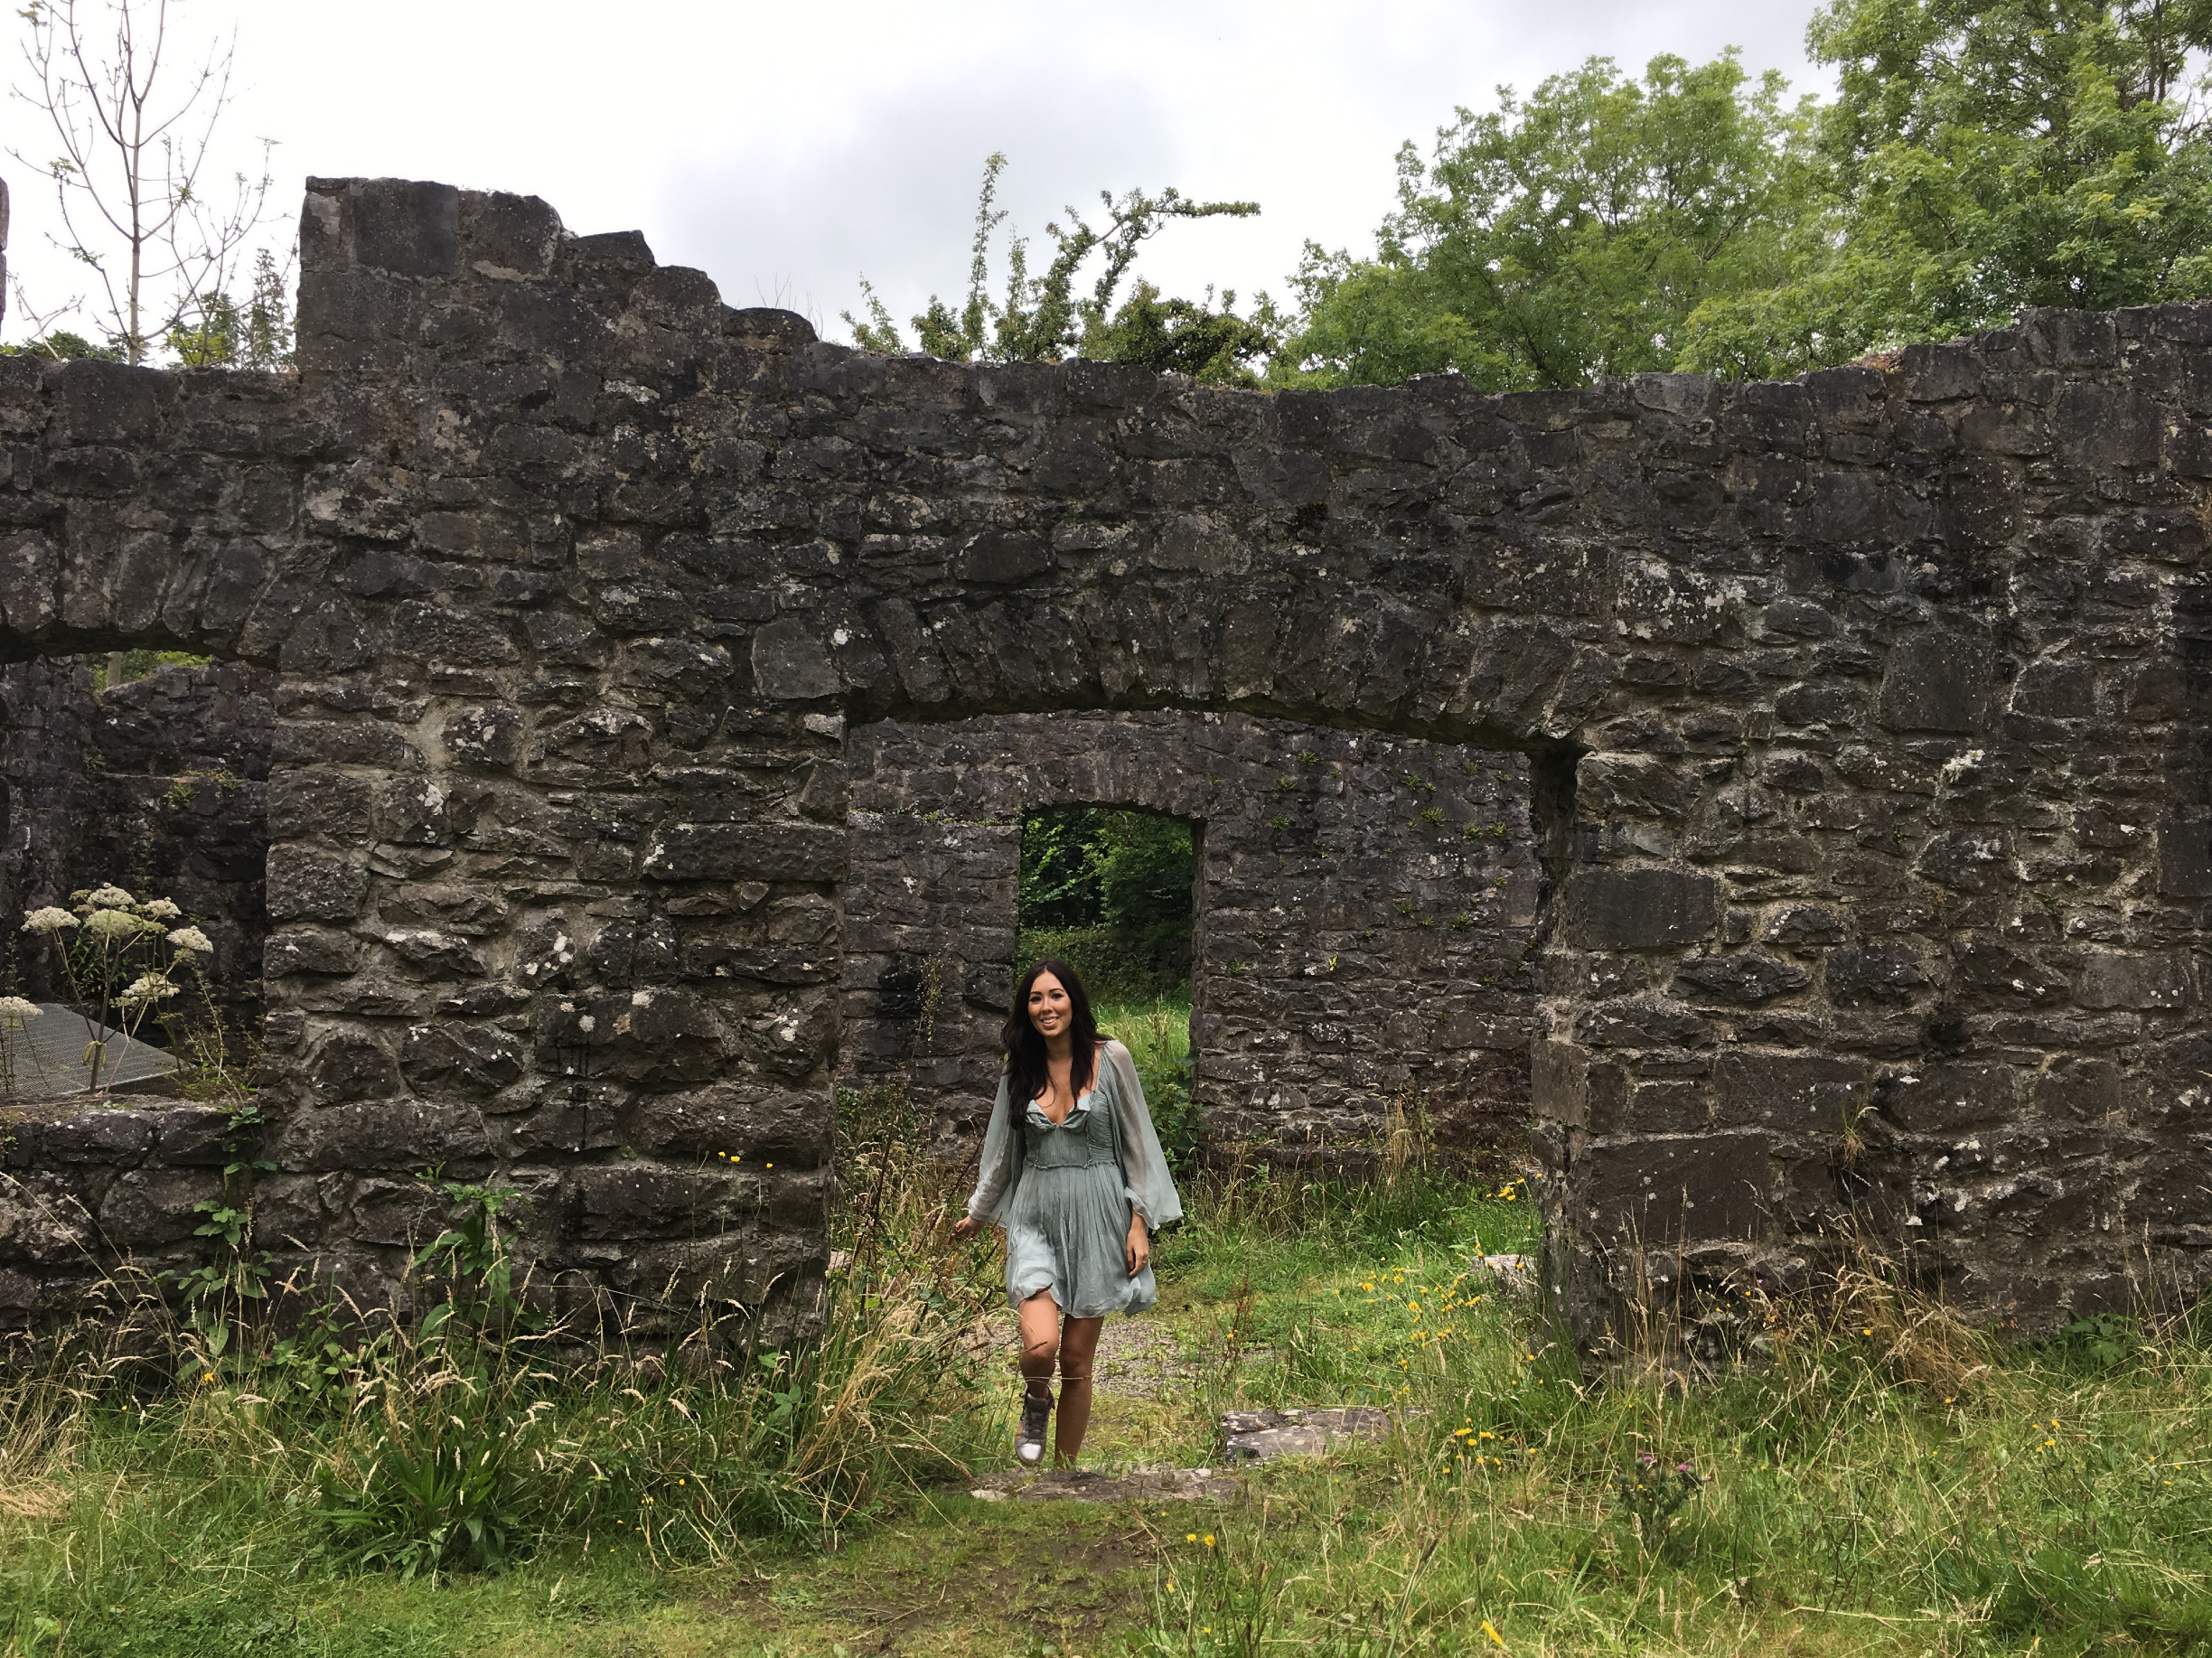 Exploring an old water mill on the grounds.